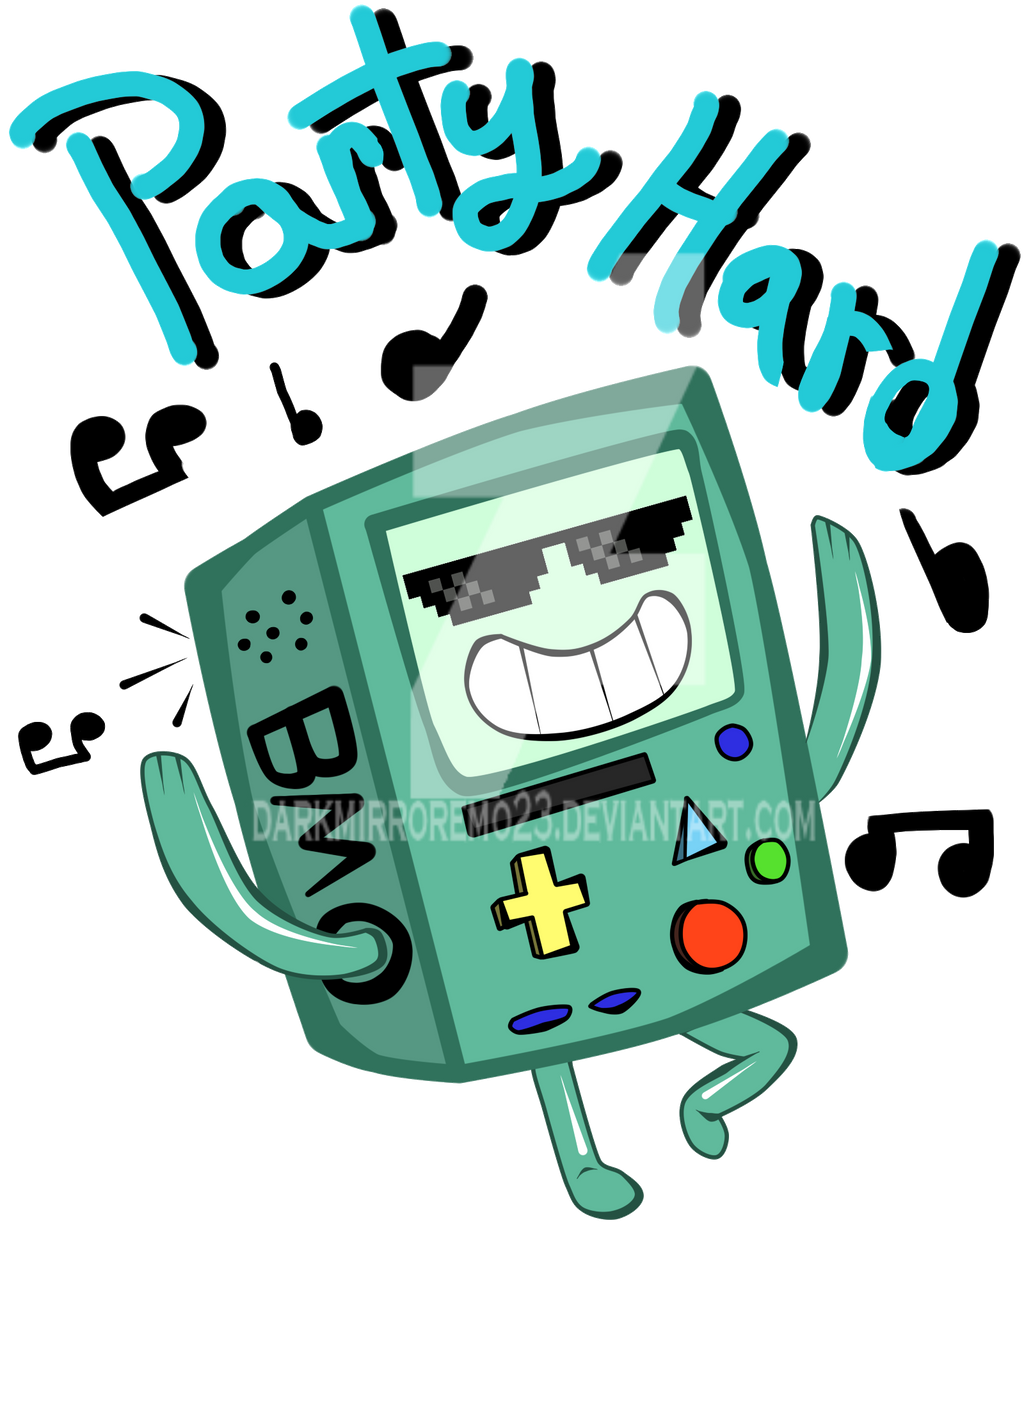 Adventure Time: Bmo by DarkMirrorEmo23